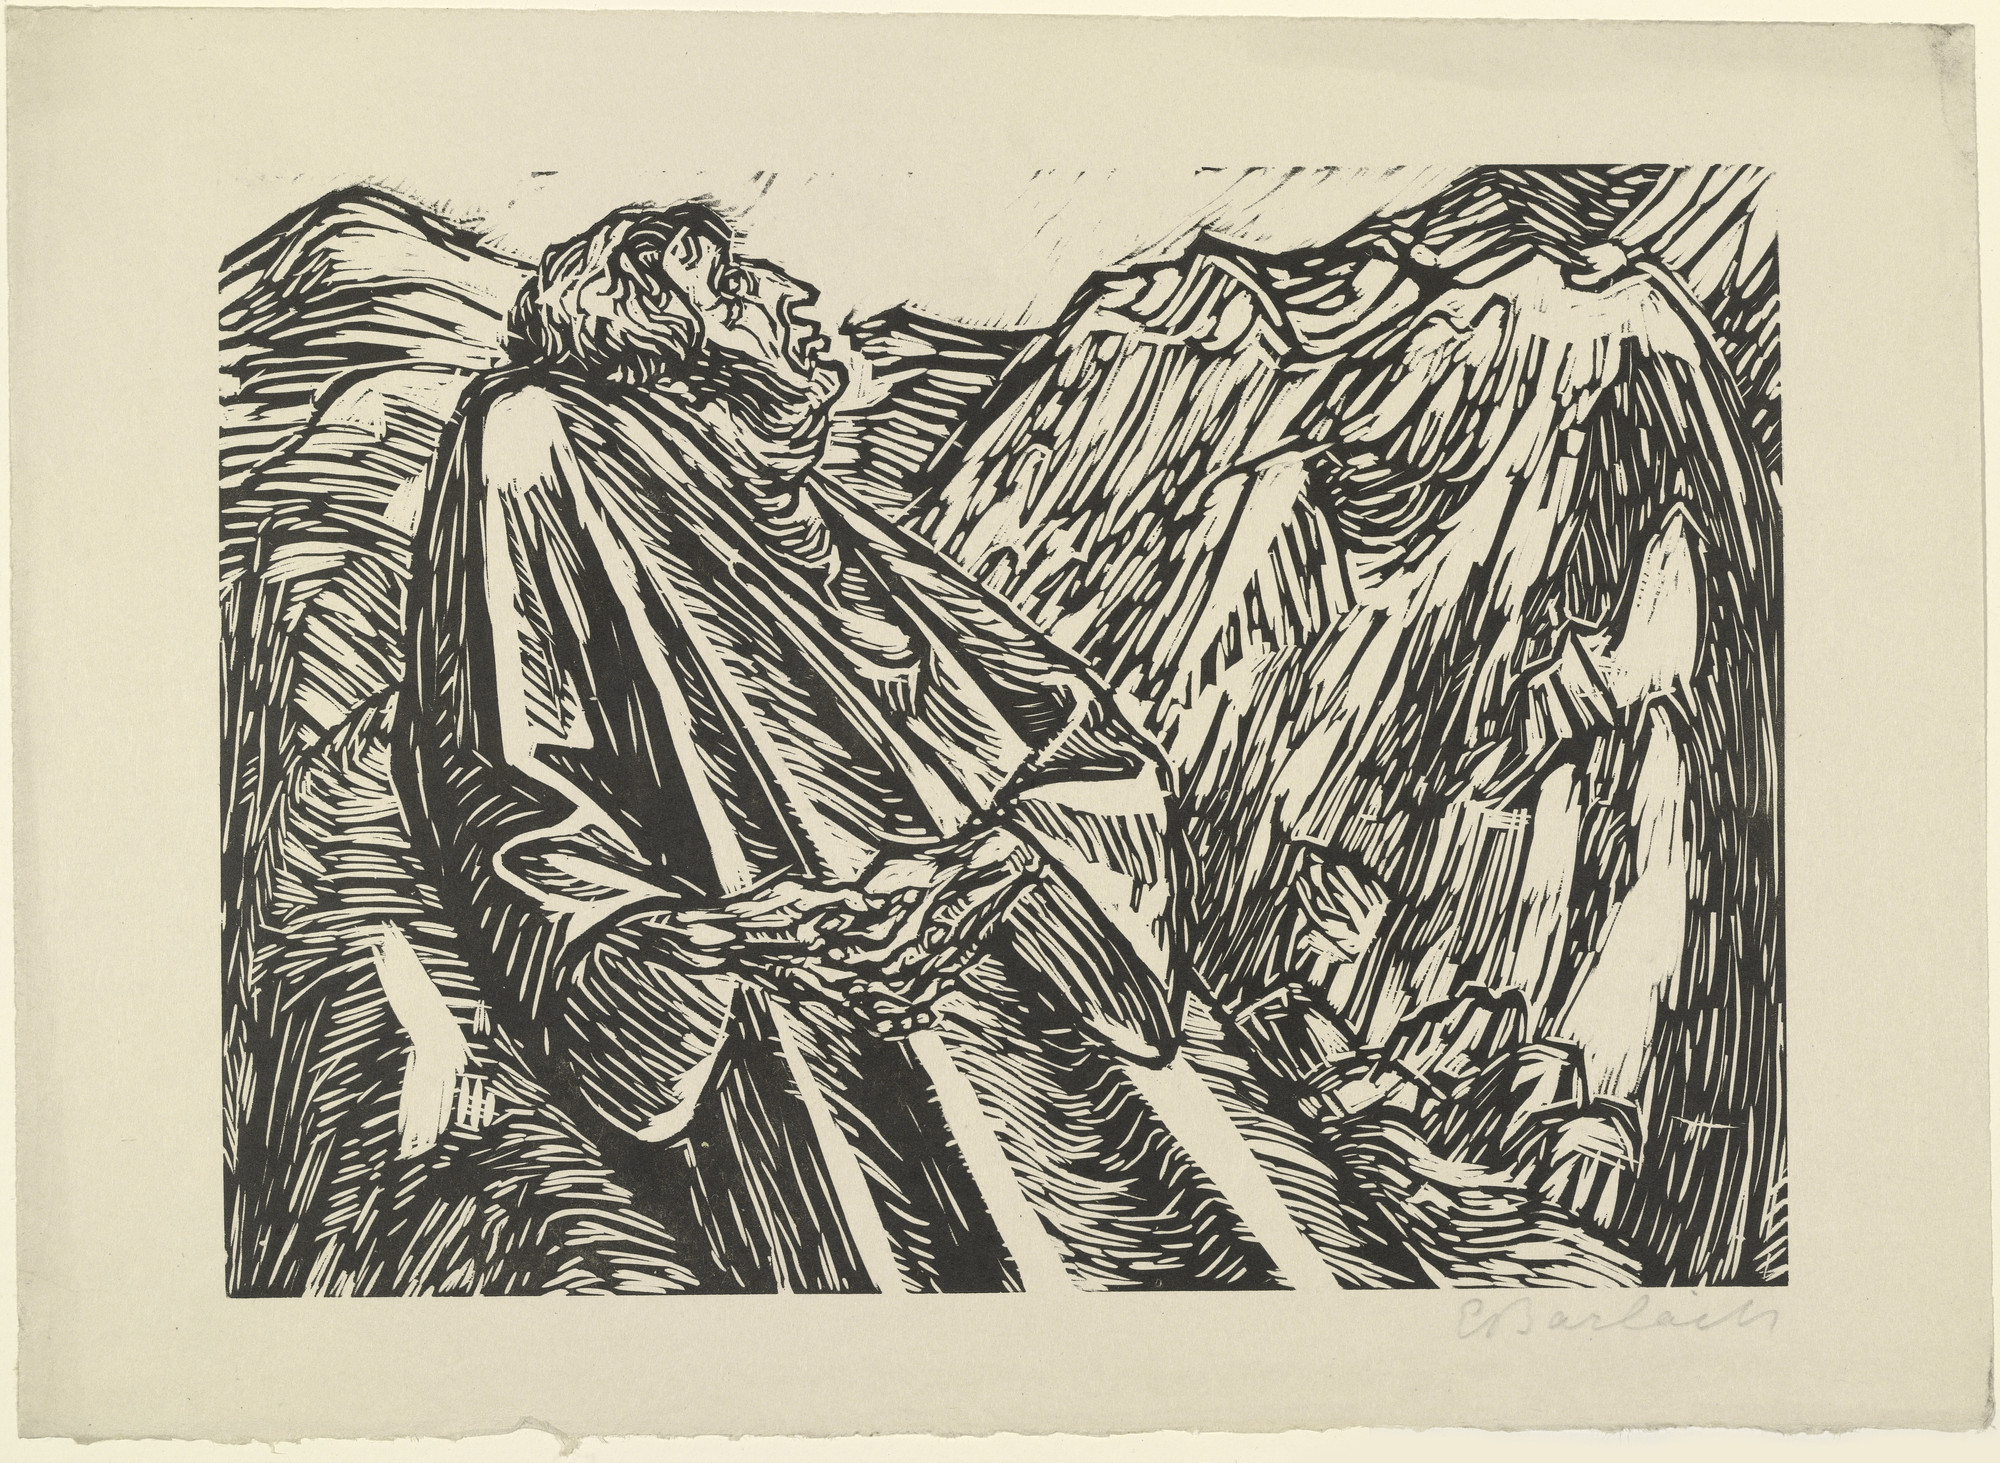 Ernst Barlach. The Rocks (Die Felsen) from The Transformations of God (Die Wandlungen Gottes). (1922, executed 1920-21)